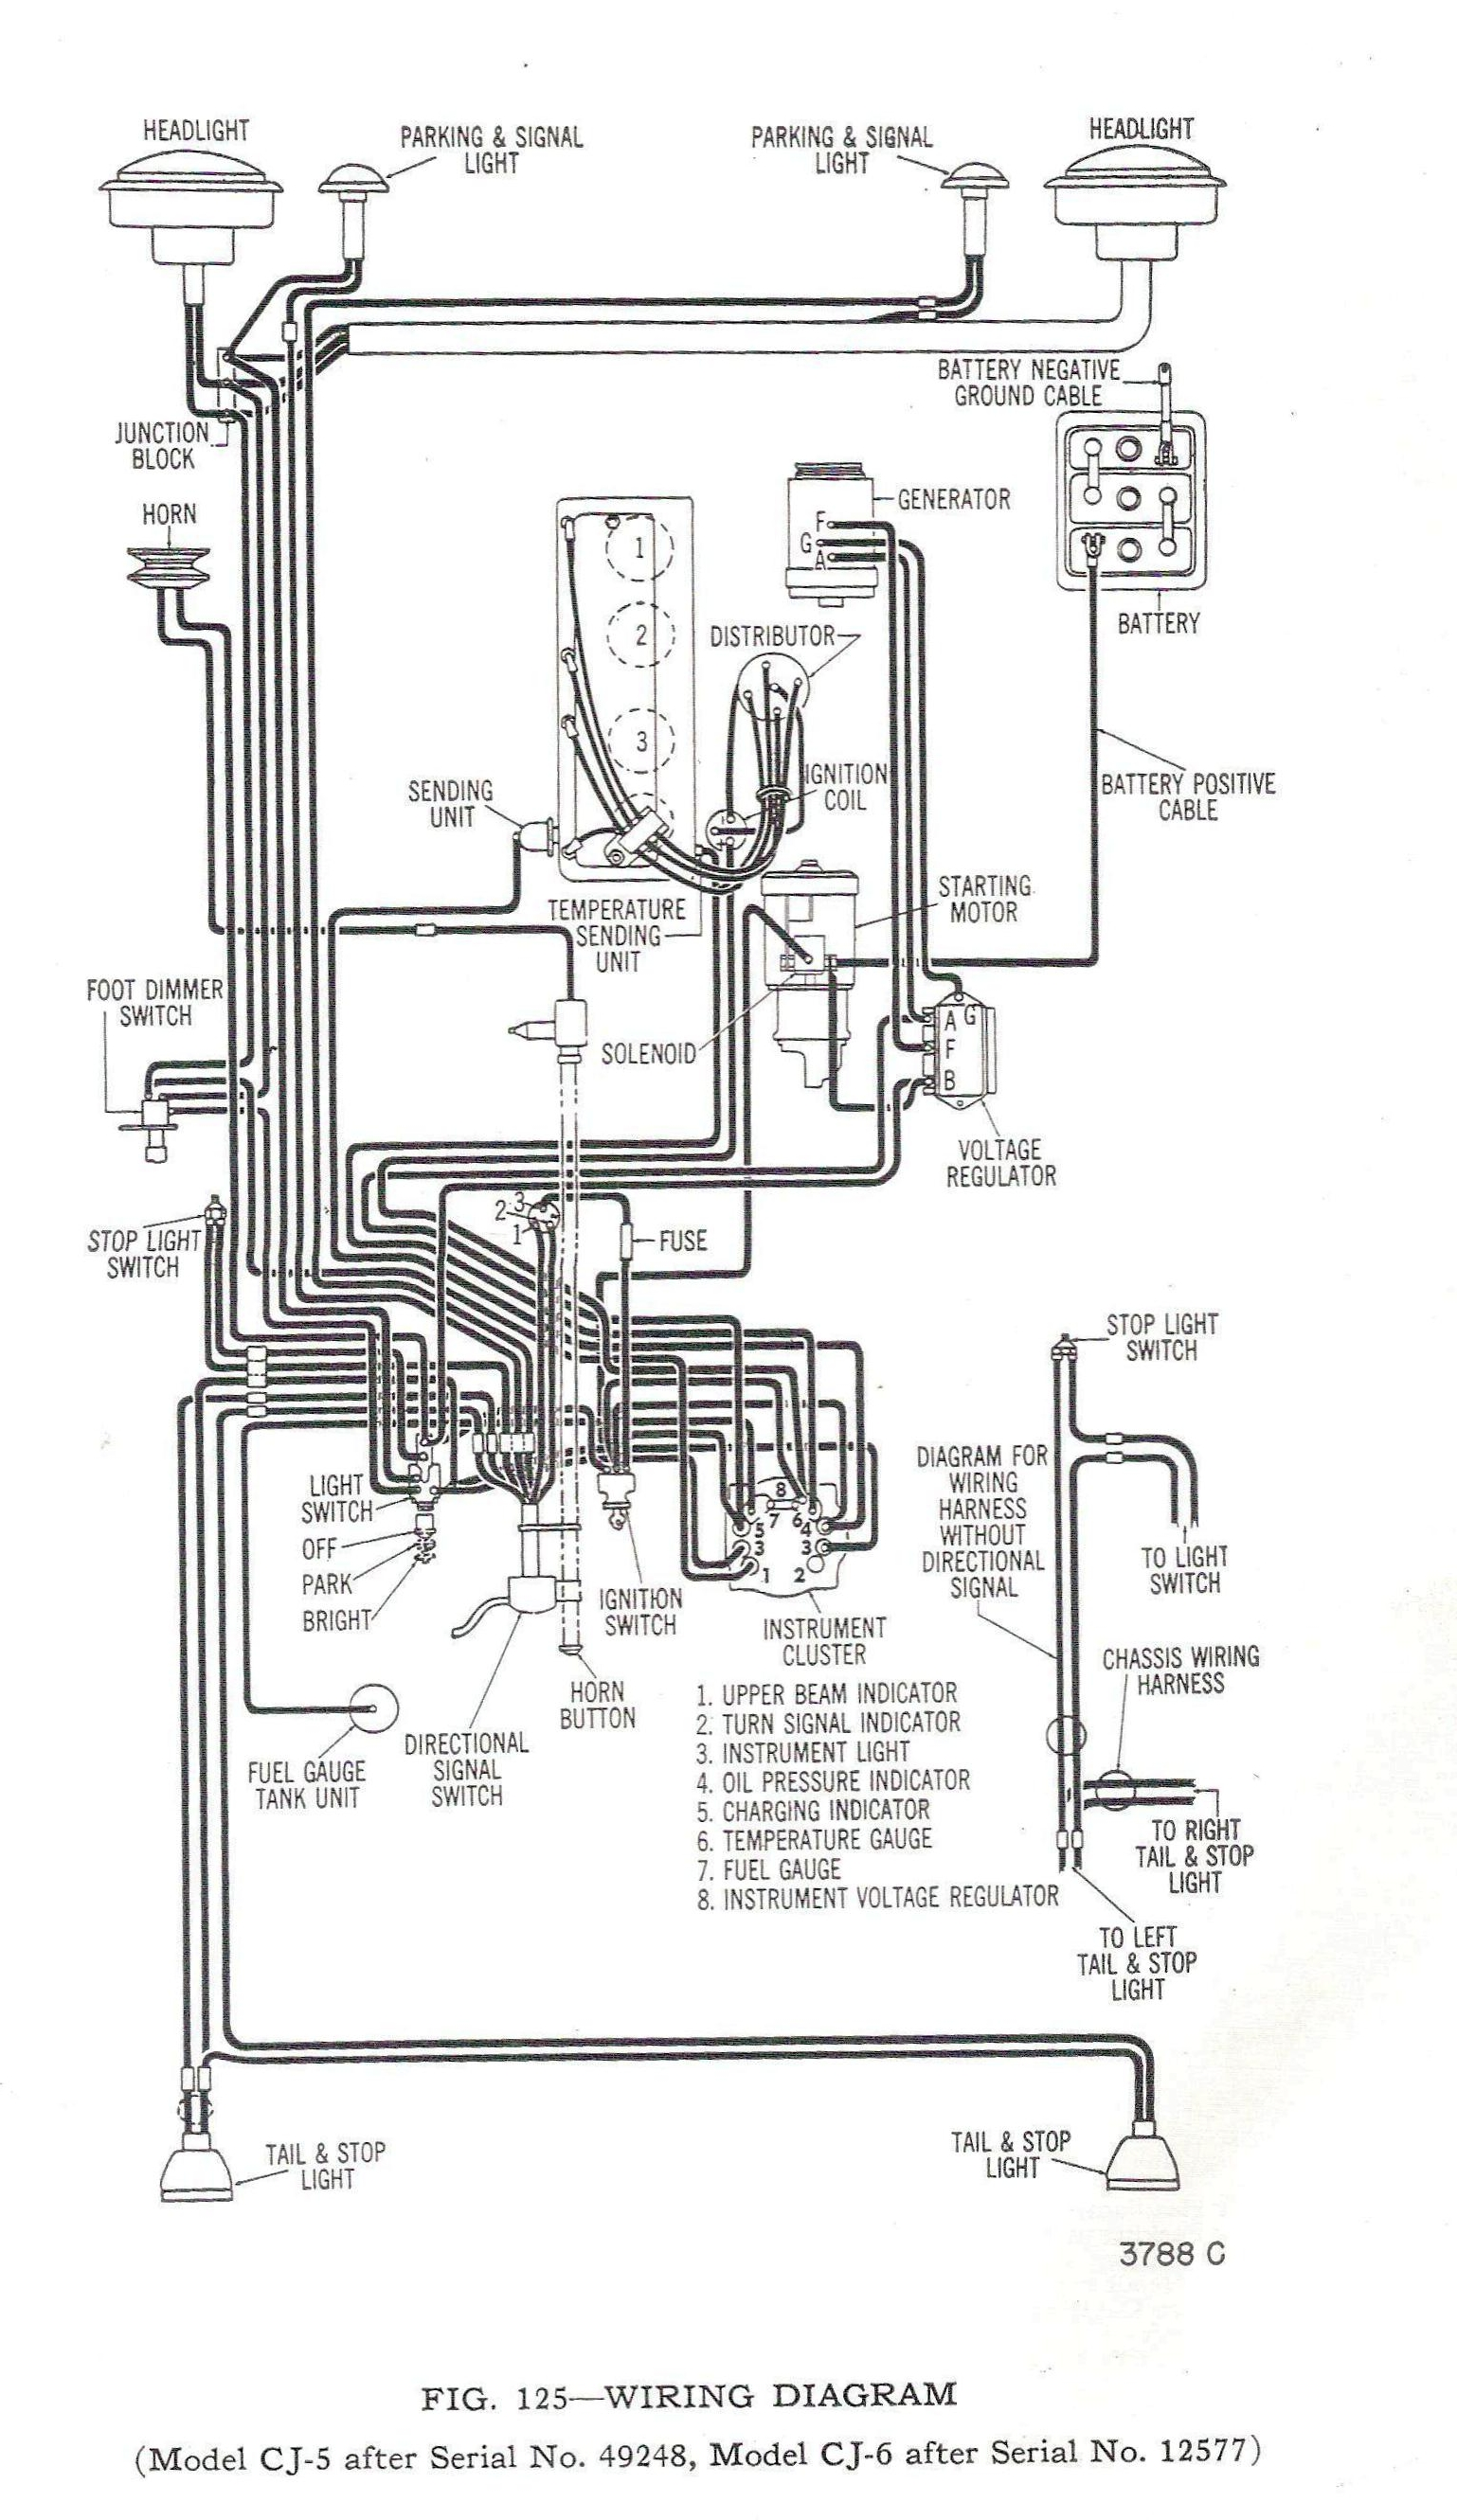 1980 Jeep Cj7 Wiring Schematic